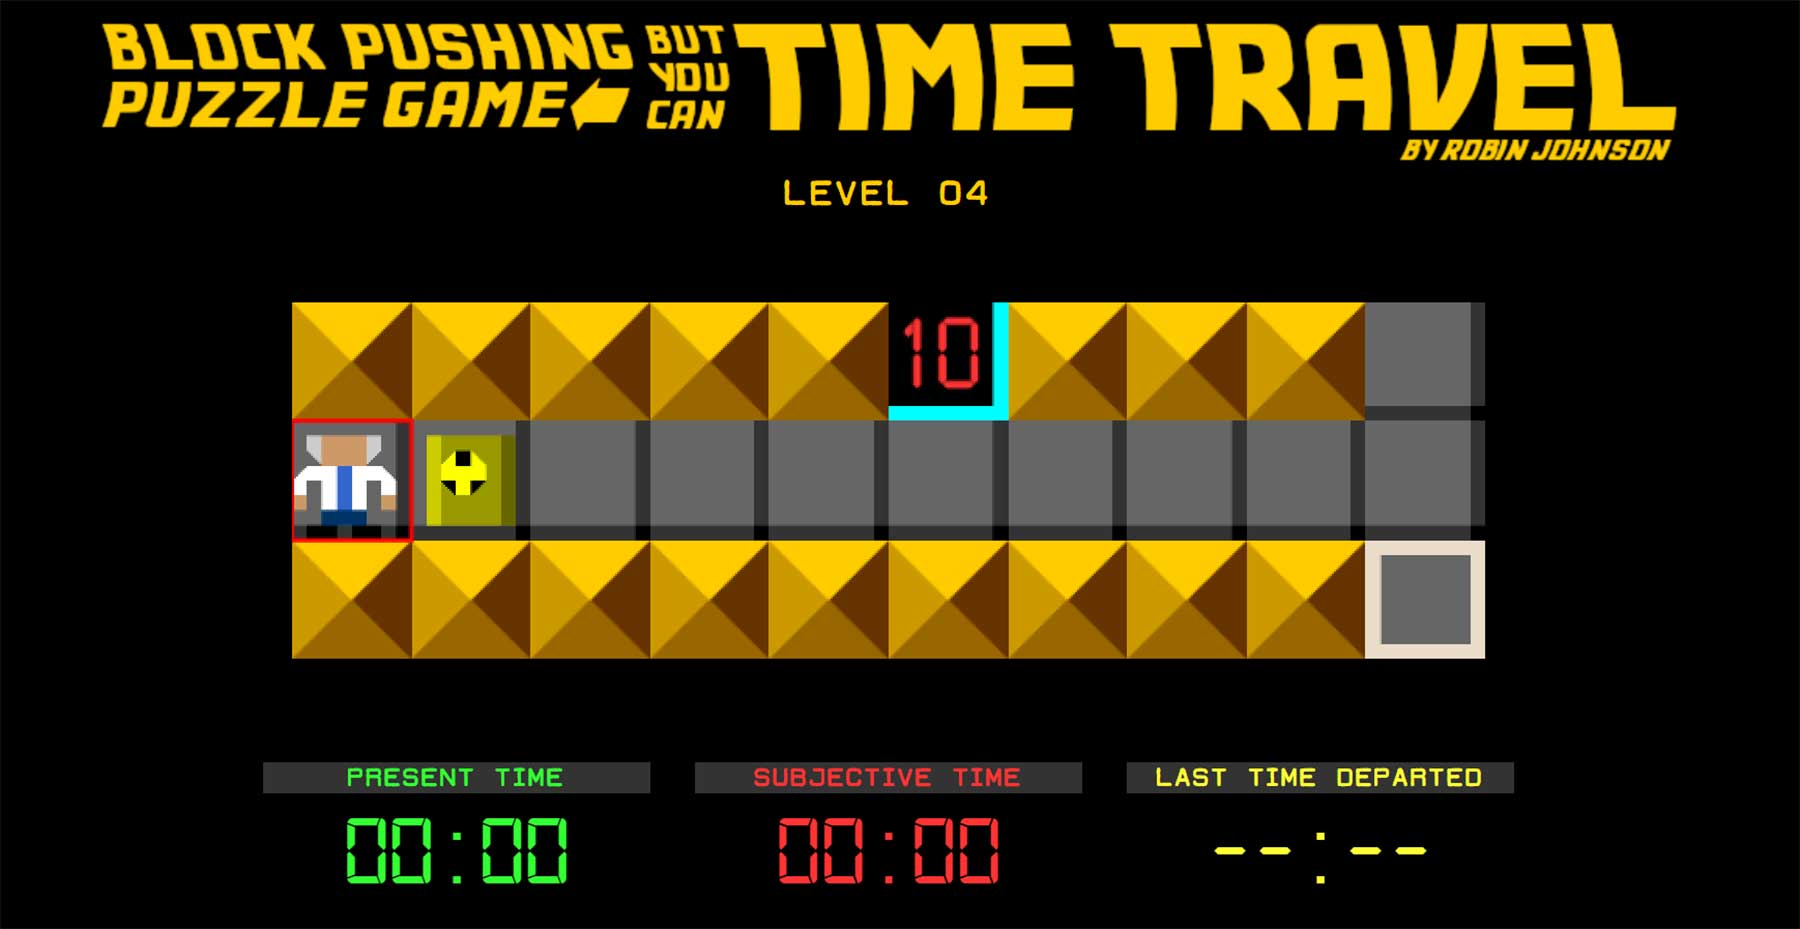 """Block Pushing Puzzle Game But You Can Time Travel"""